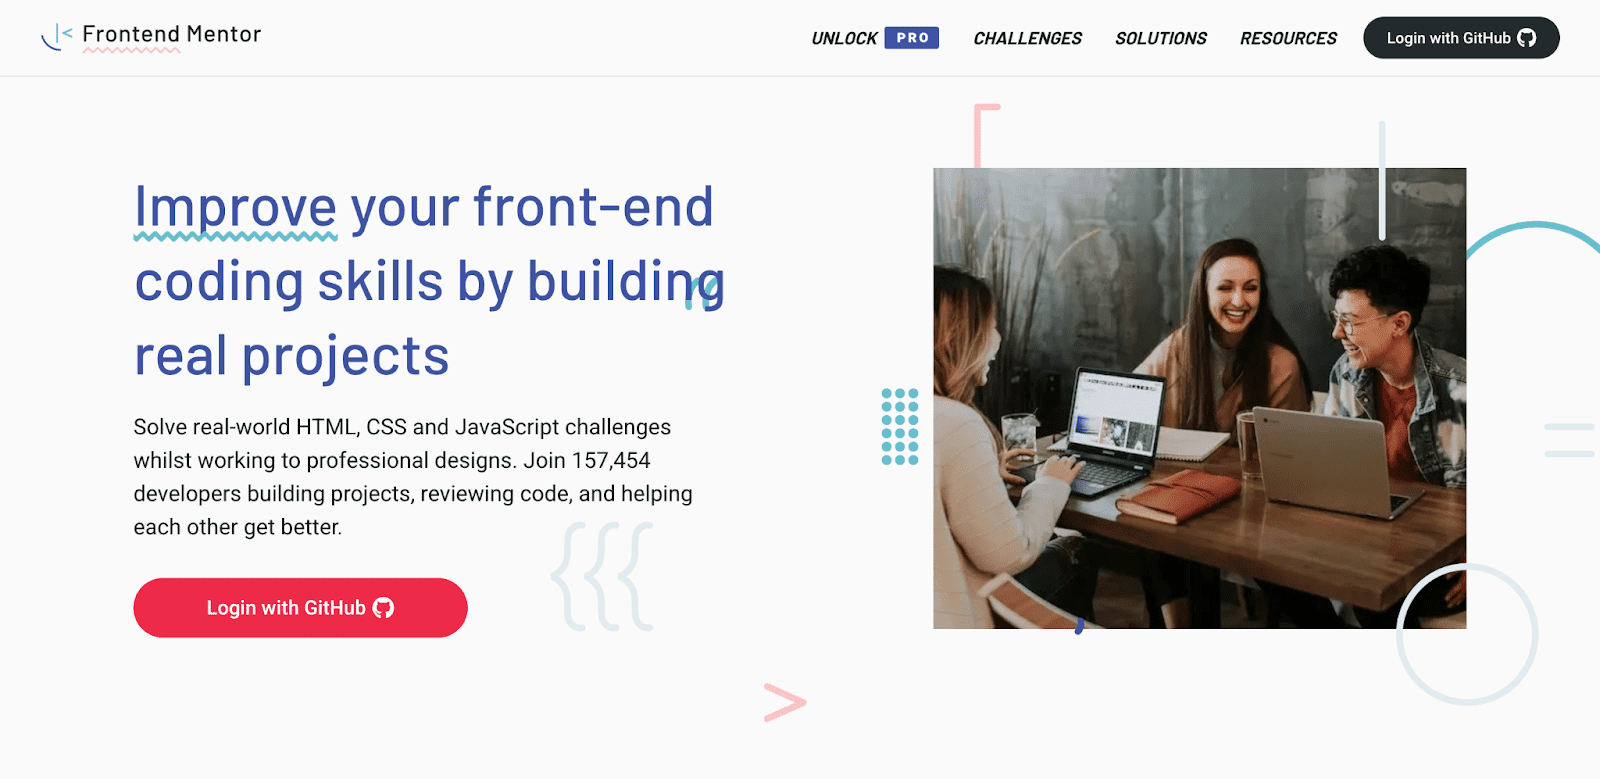 Frontend Mentor Landing Page